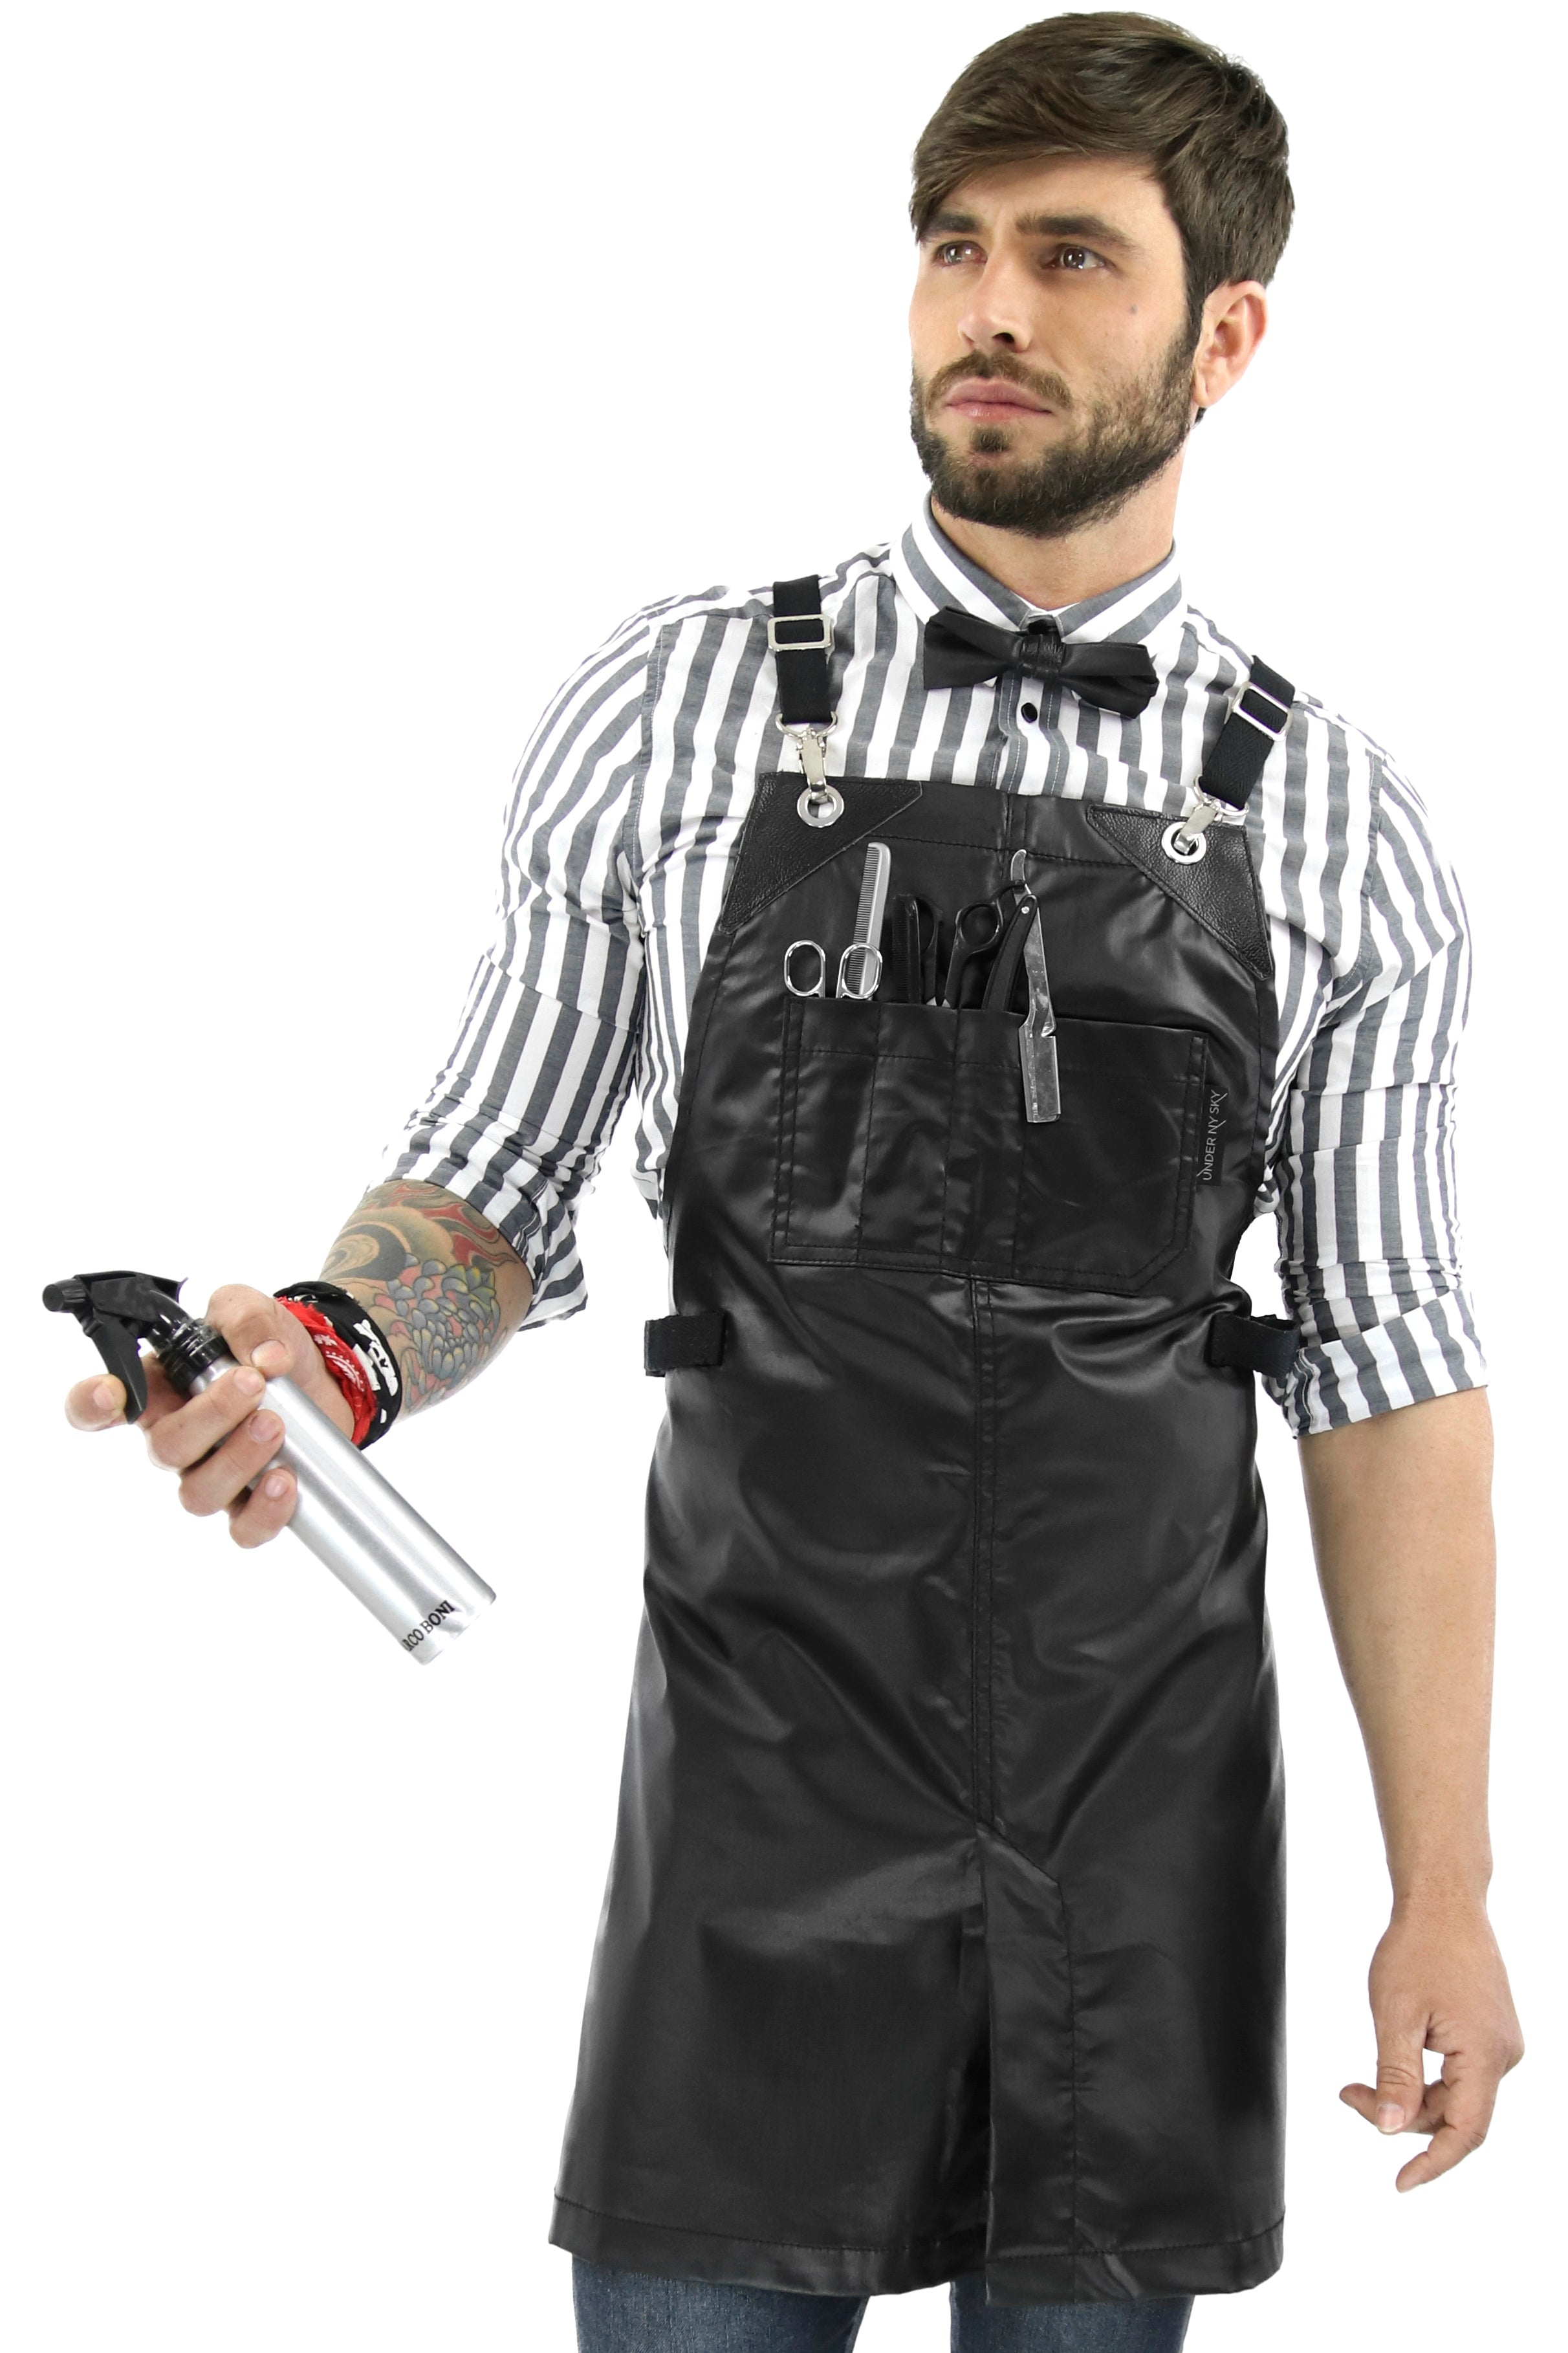 Barber Apron - Black Water Resistant Coated Twill - Chrome Hardware - Small Size